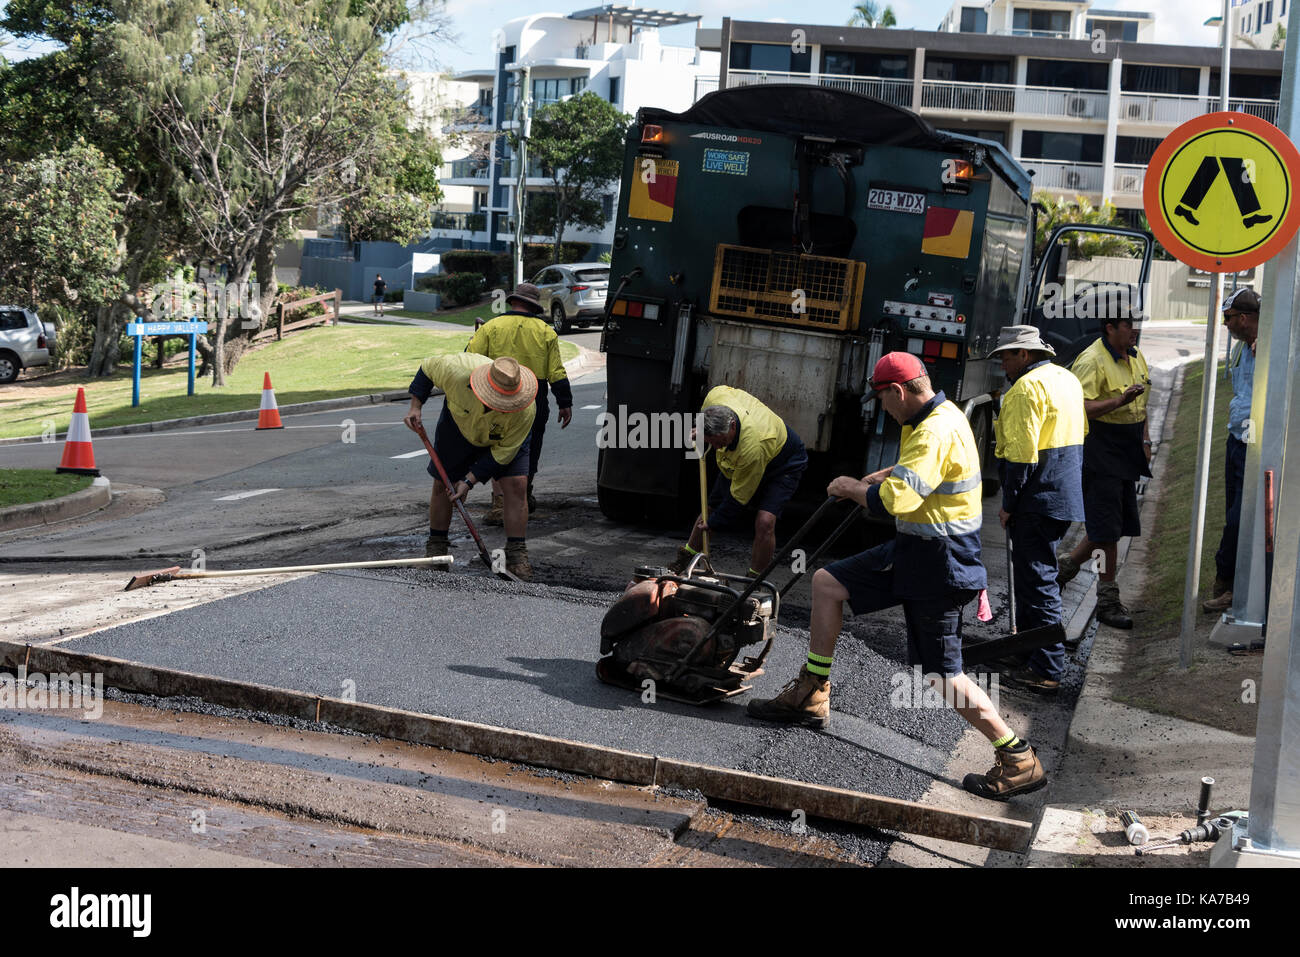 A road maintenance crew re-surfacing a road in Caloundra, Queensland, Australia - Stock Image